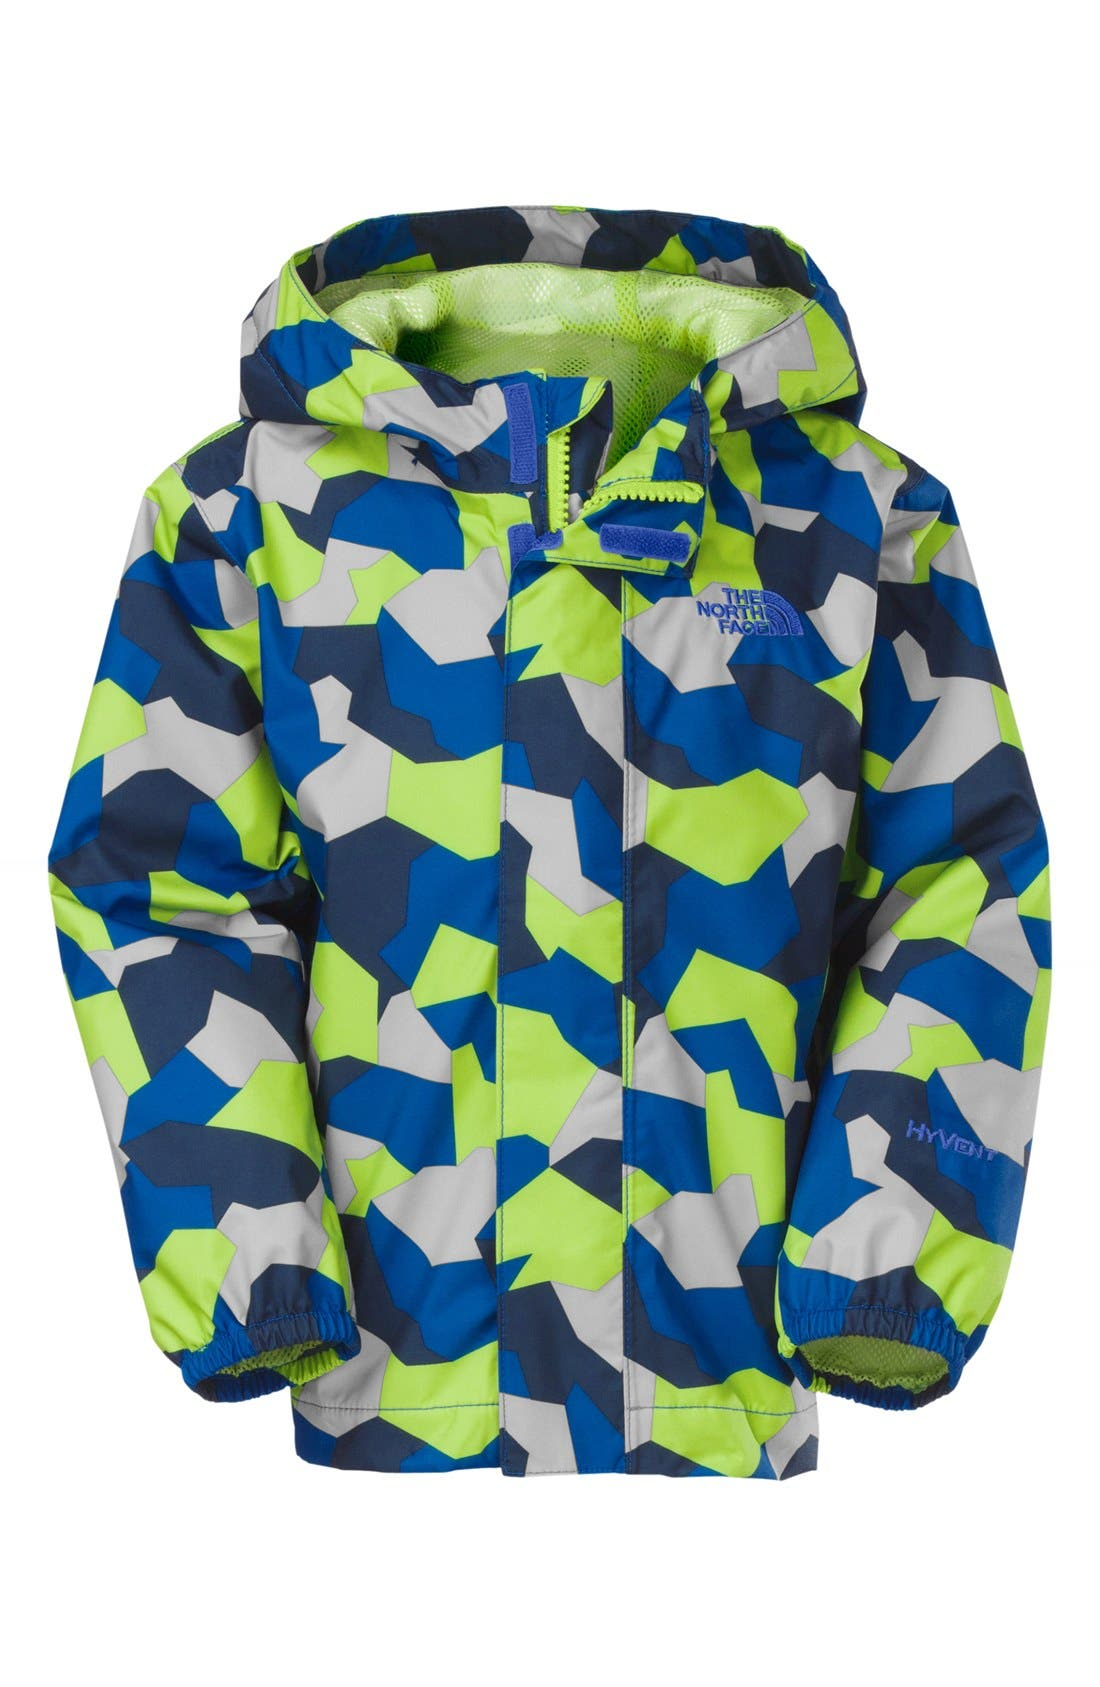 Alternate Image 1 Selected - The North Face 'Campcam' Hooded Rain Jacket (Toddler Boys)